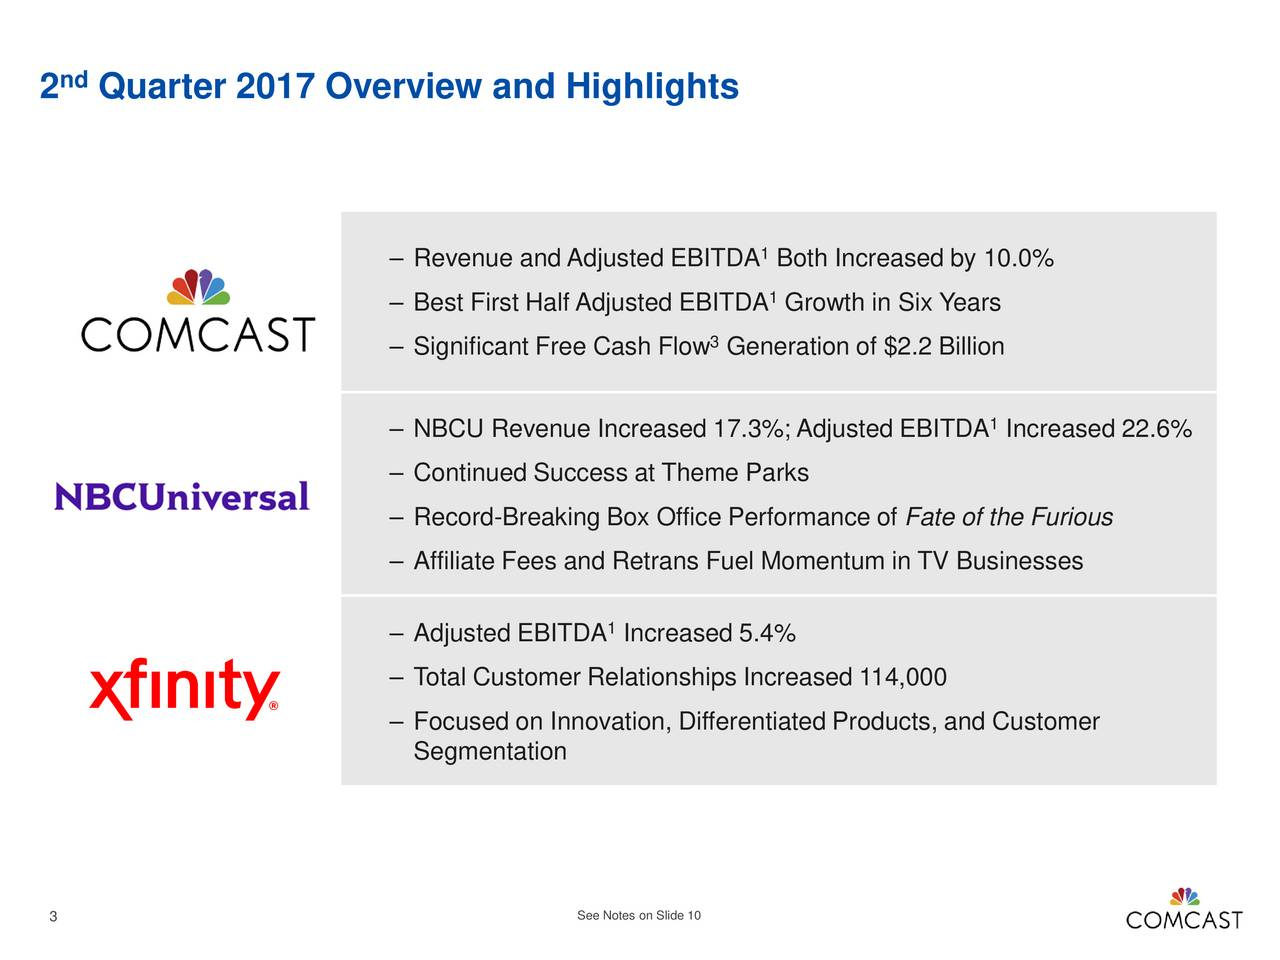 Comcast Quote Comcast Corporation 2017 Q2  Results  Earnings Call Slides